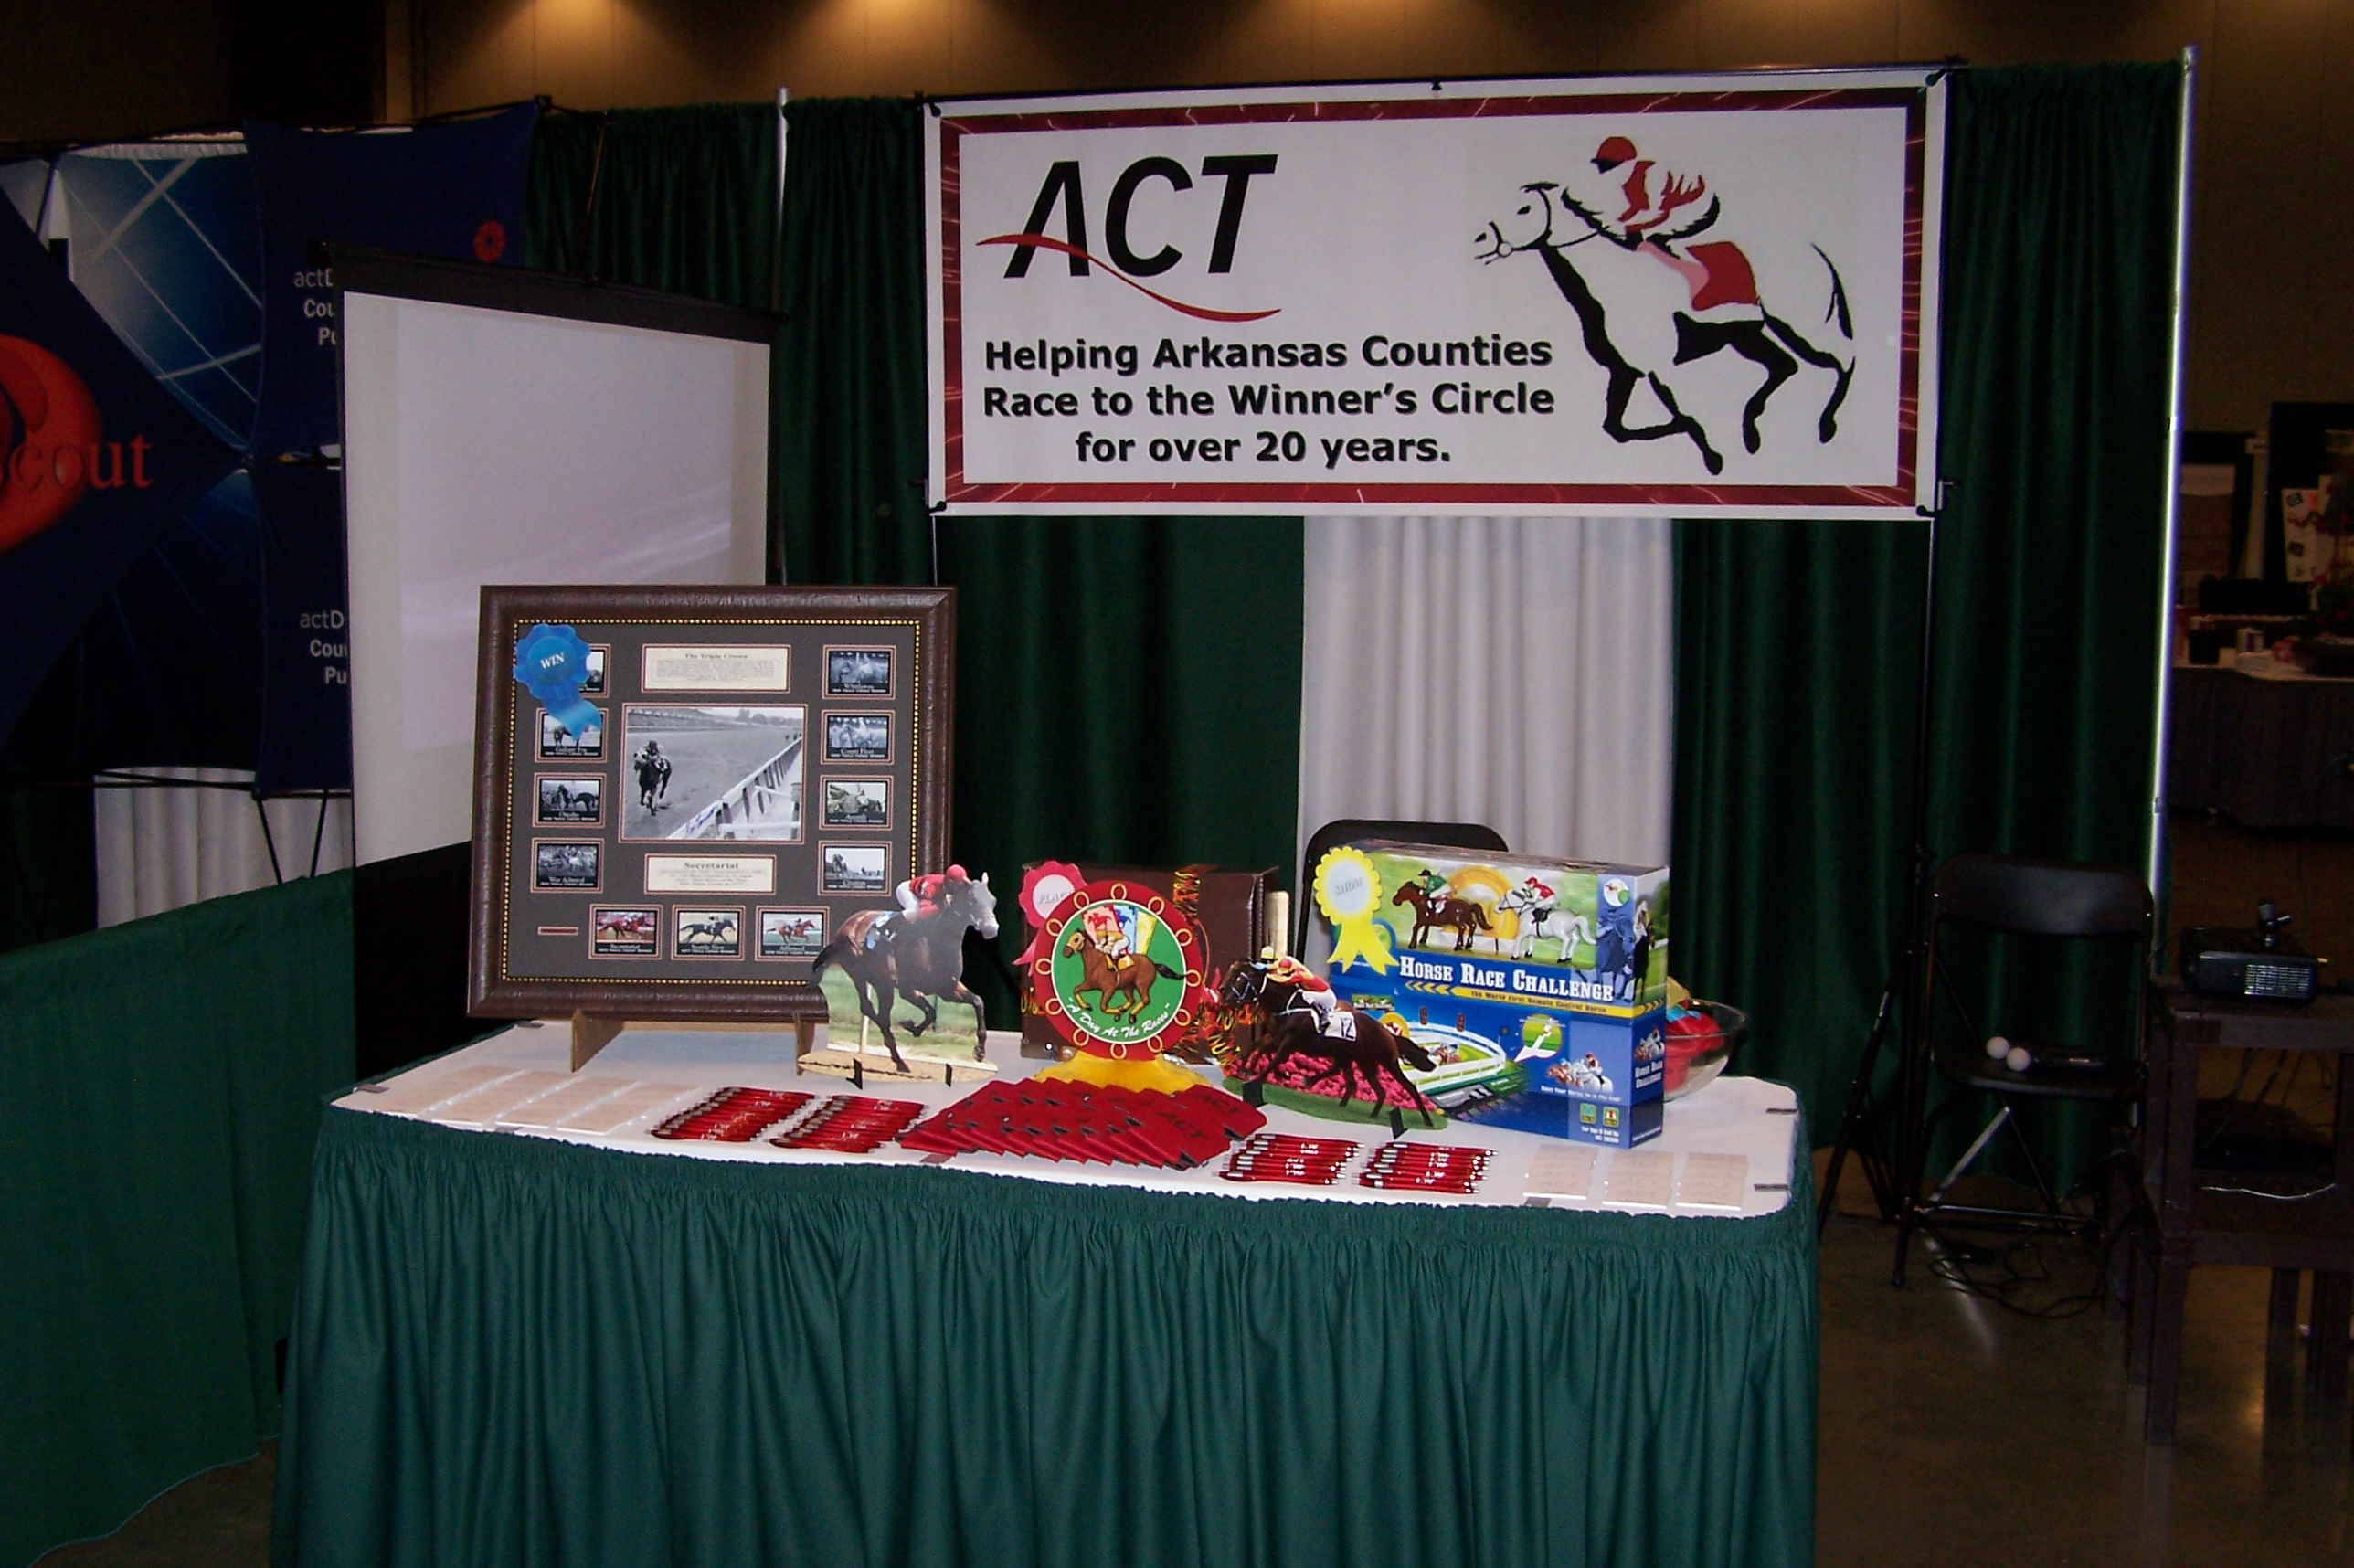 The AAC Booth